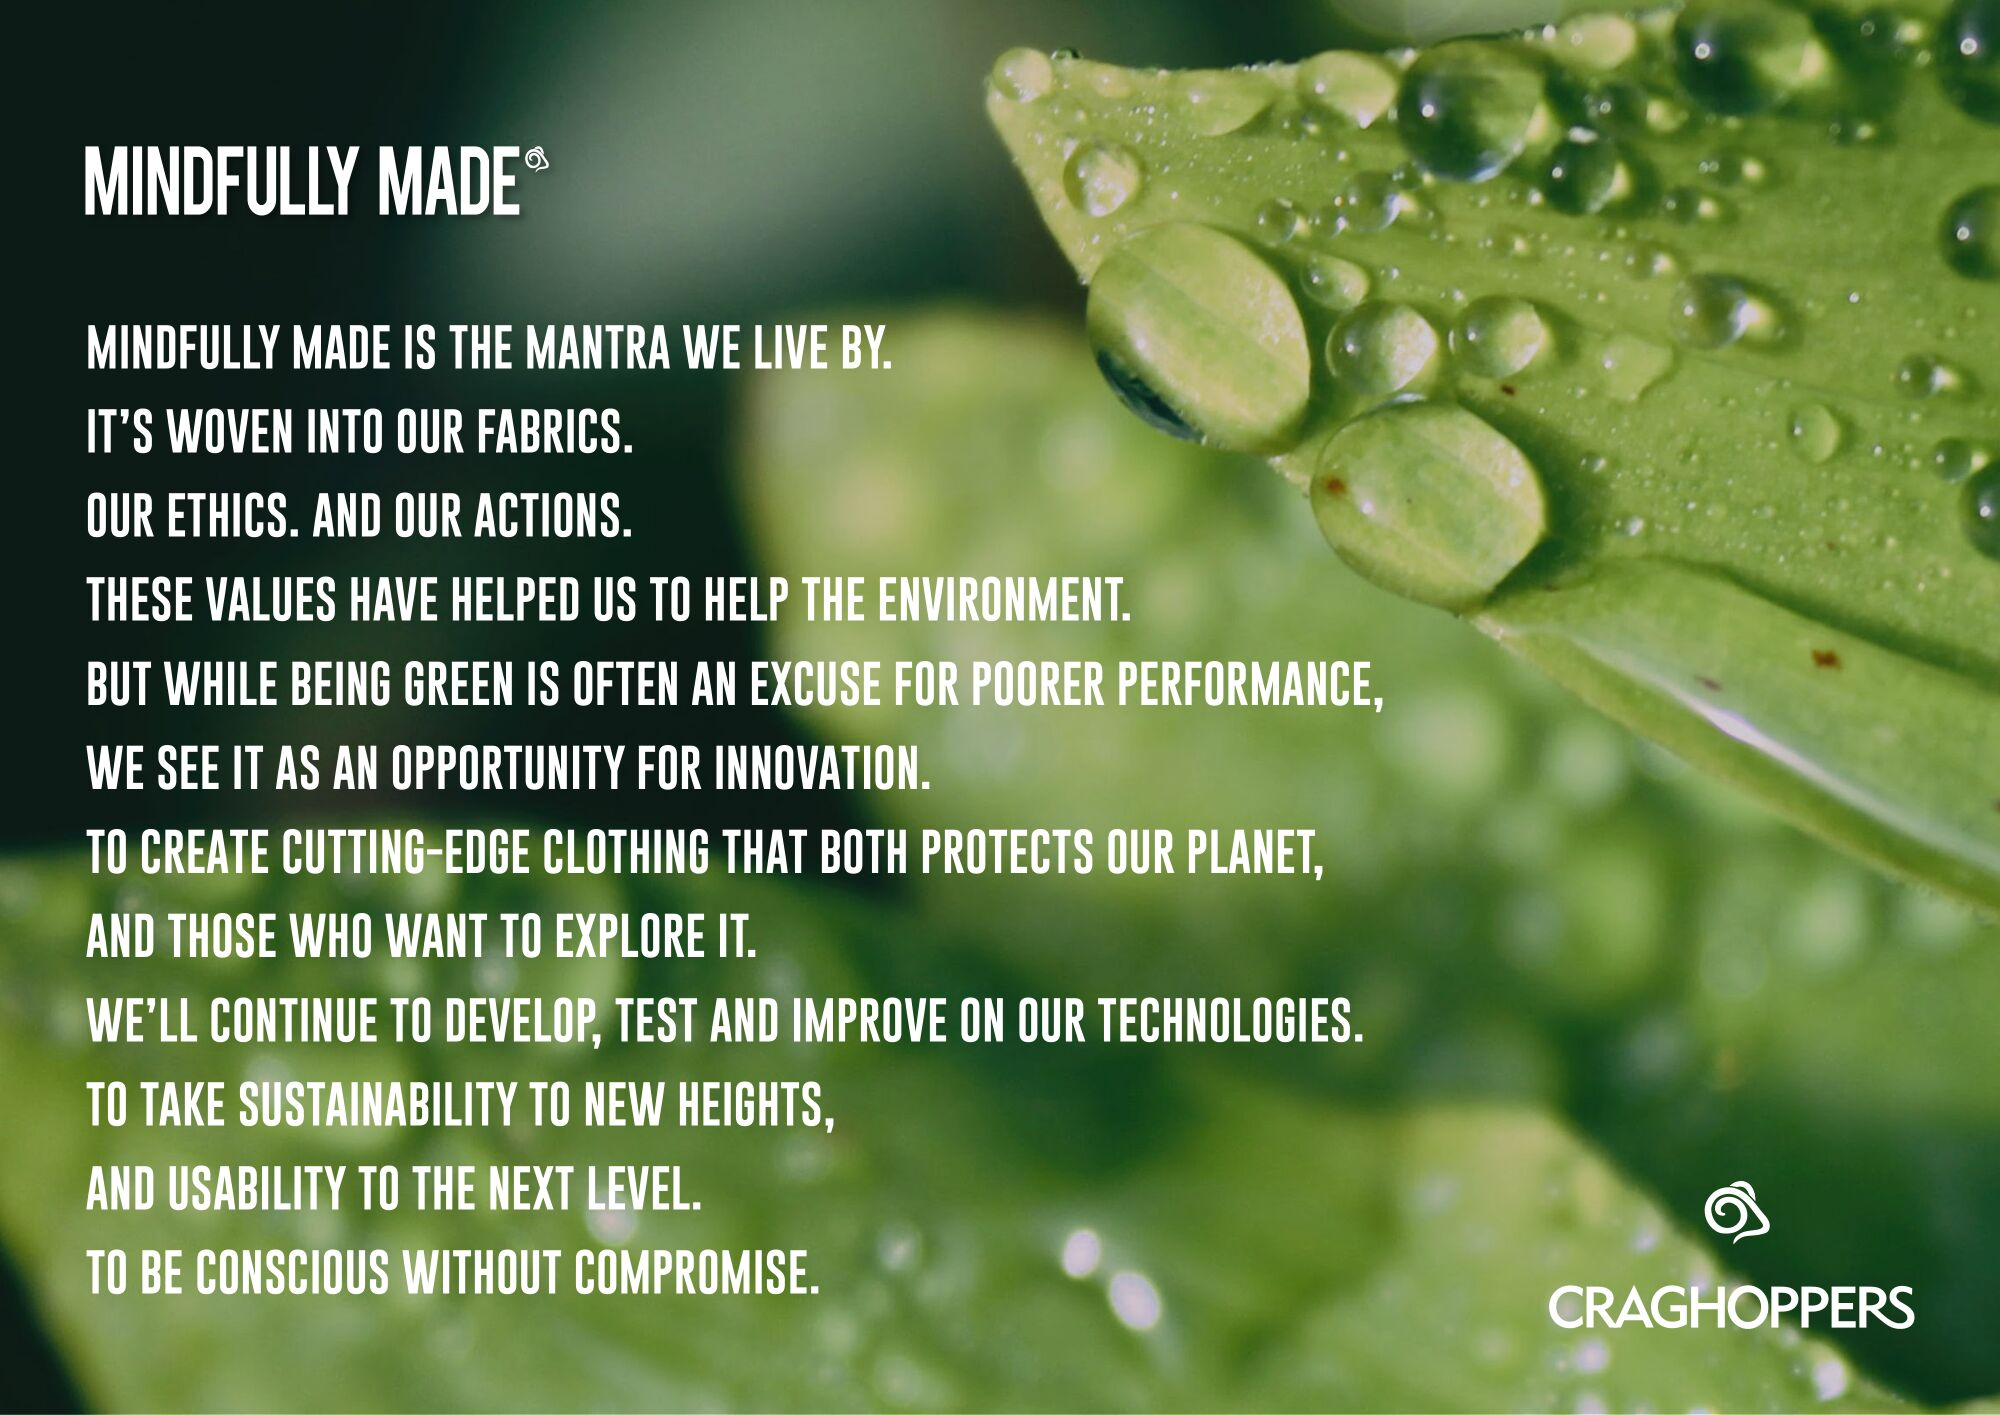 Web version-Mindfully Made AW21 Mantra